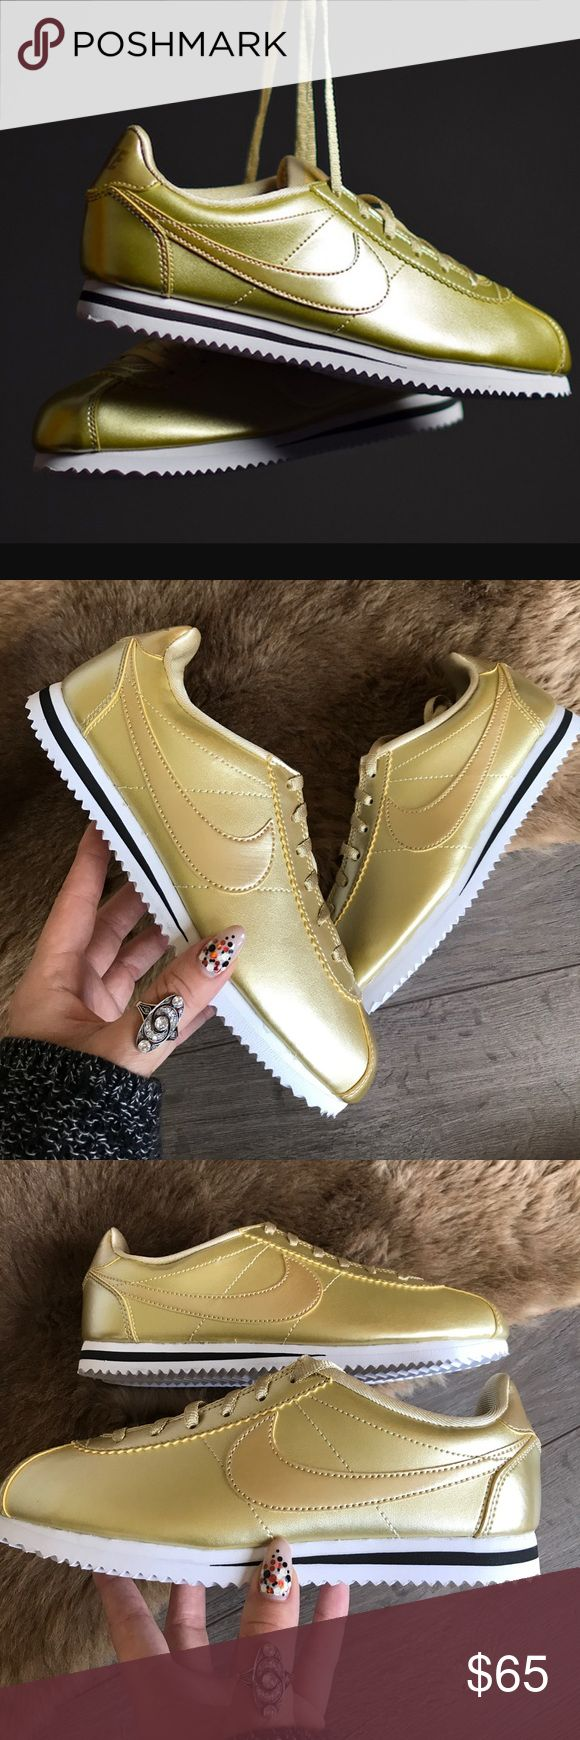 NWT Nike Cortez metallic gold Brand new size 5Y -women's 6.5 price is firm!!!! Indulge in iconic Nike sneakers with the Classic Cortez.  Full-grain leather upper. Classic herringbone outsole for comfort and traction. Nike Shoes Sneakers